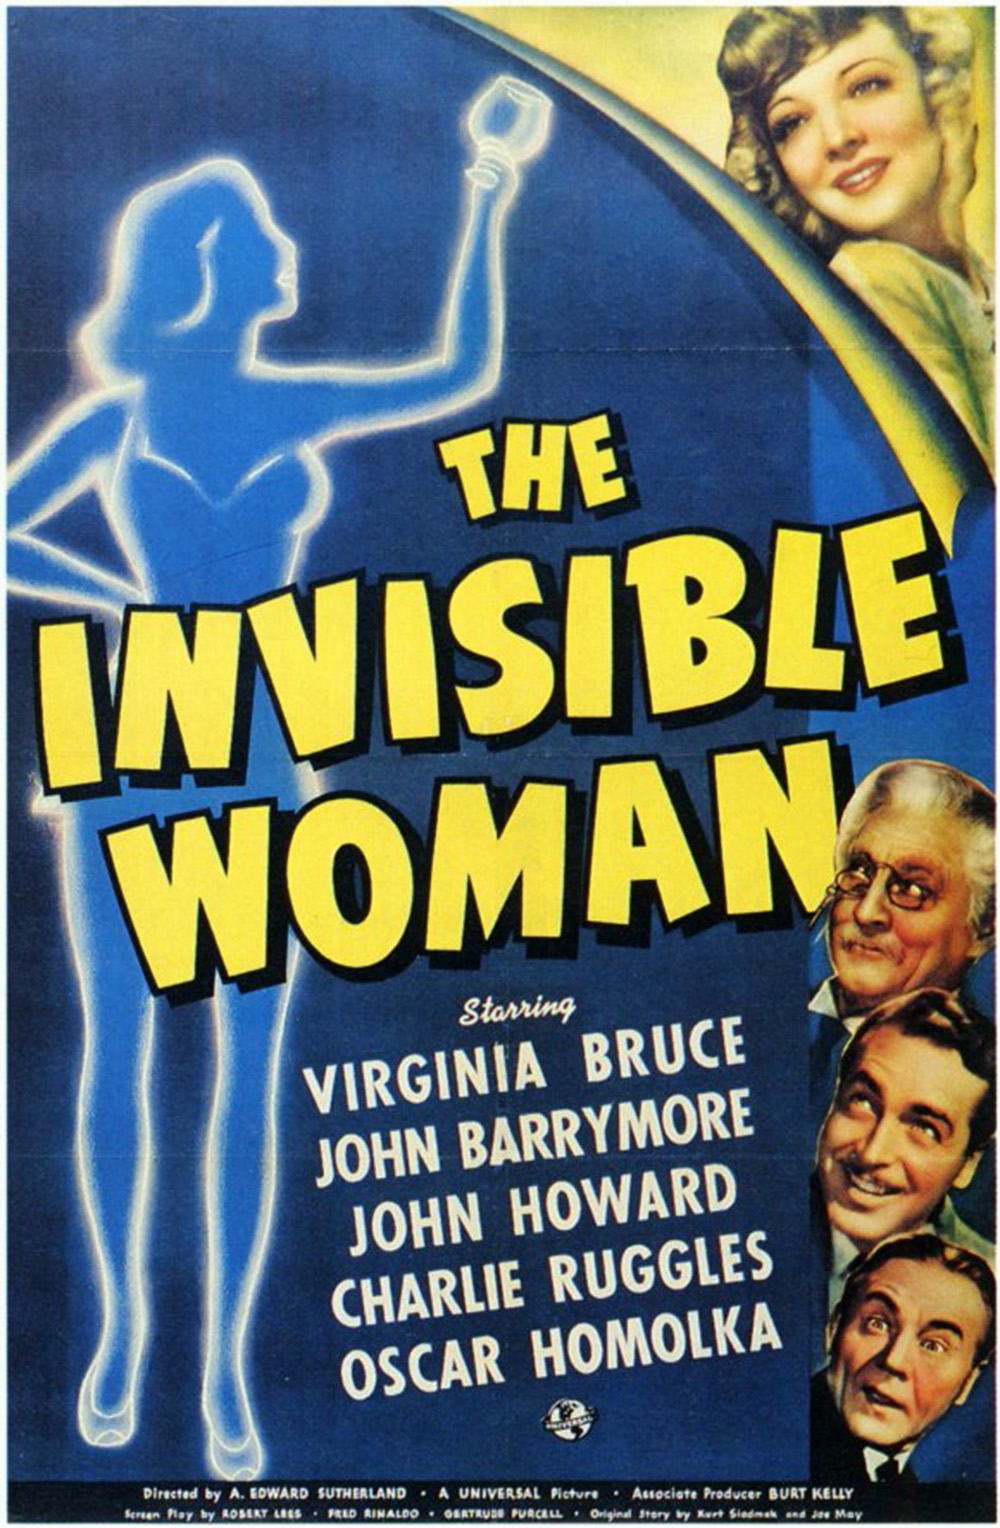 The Invisible Woman - 1940